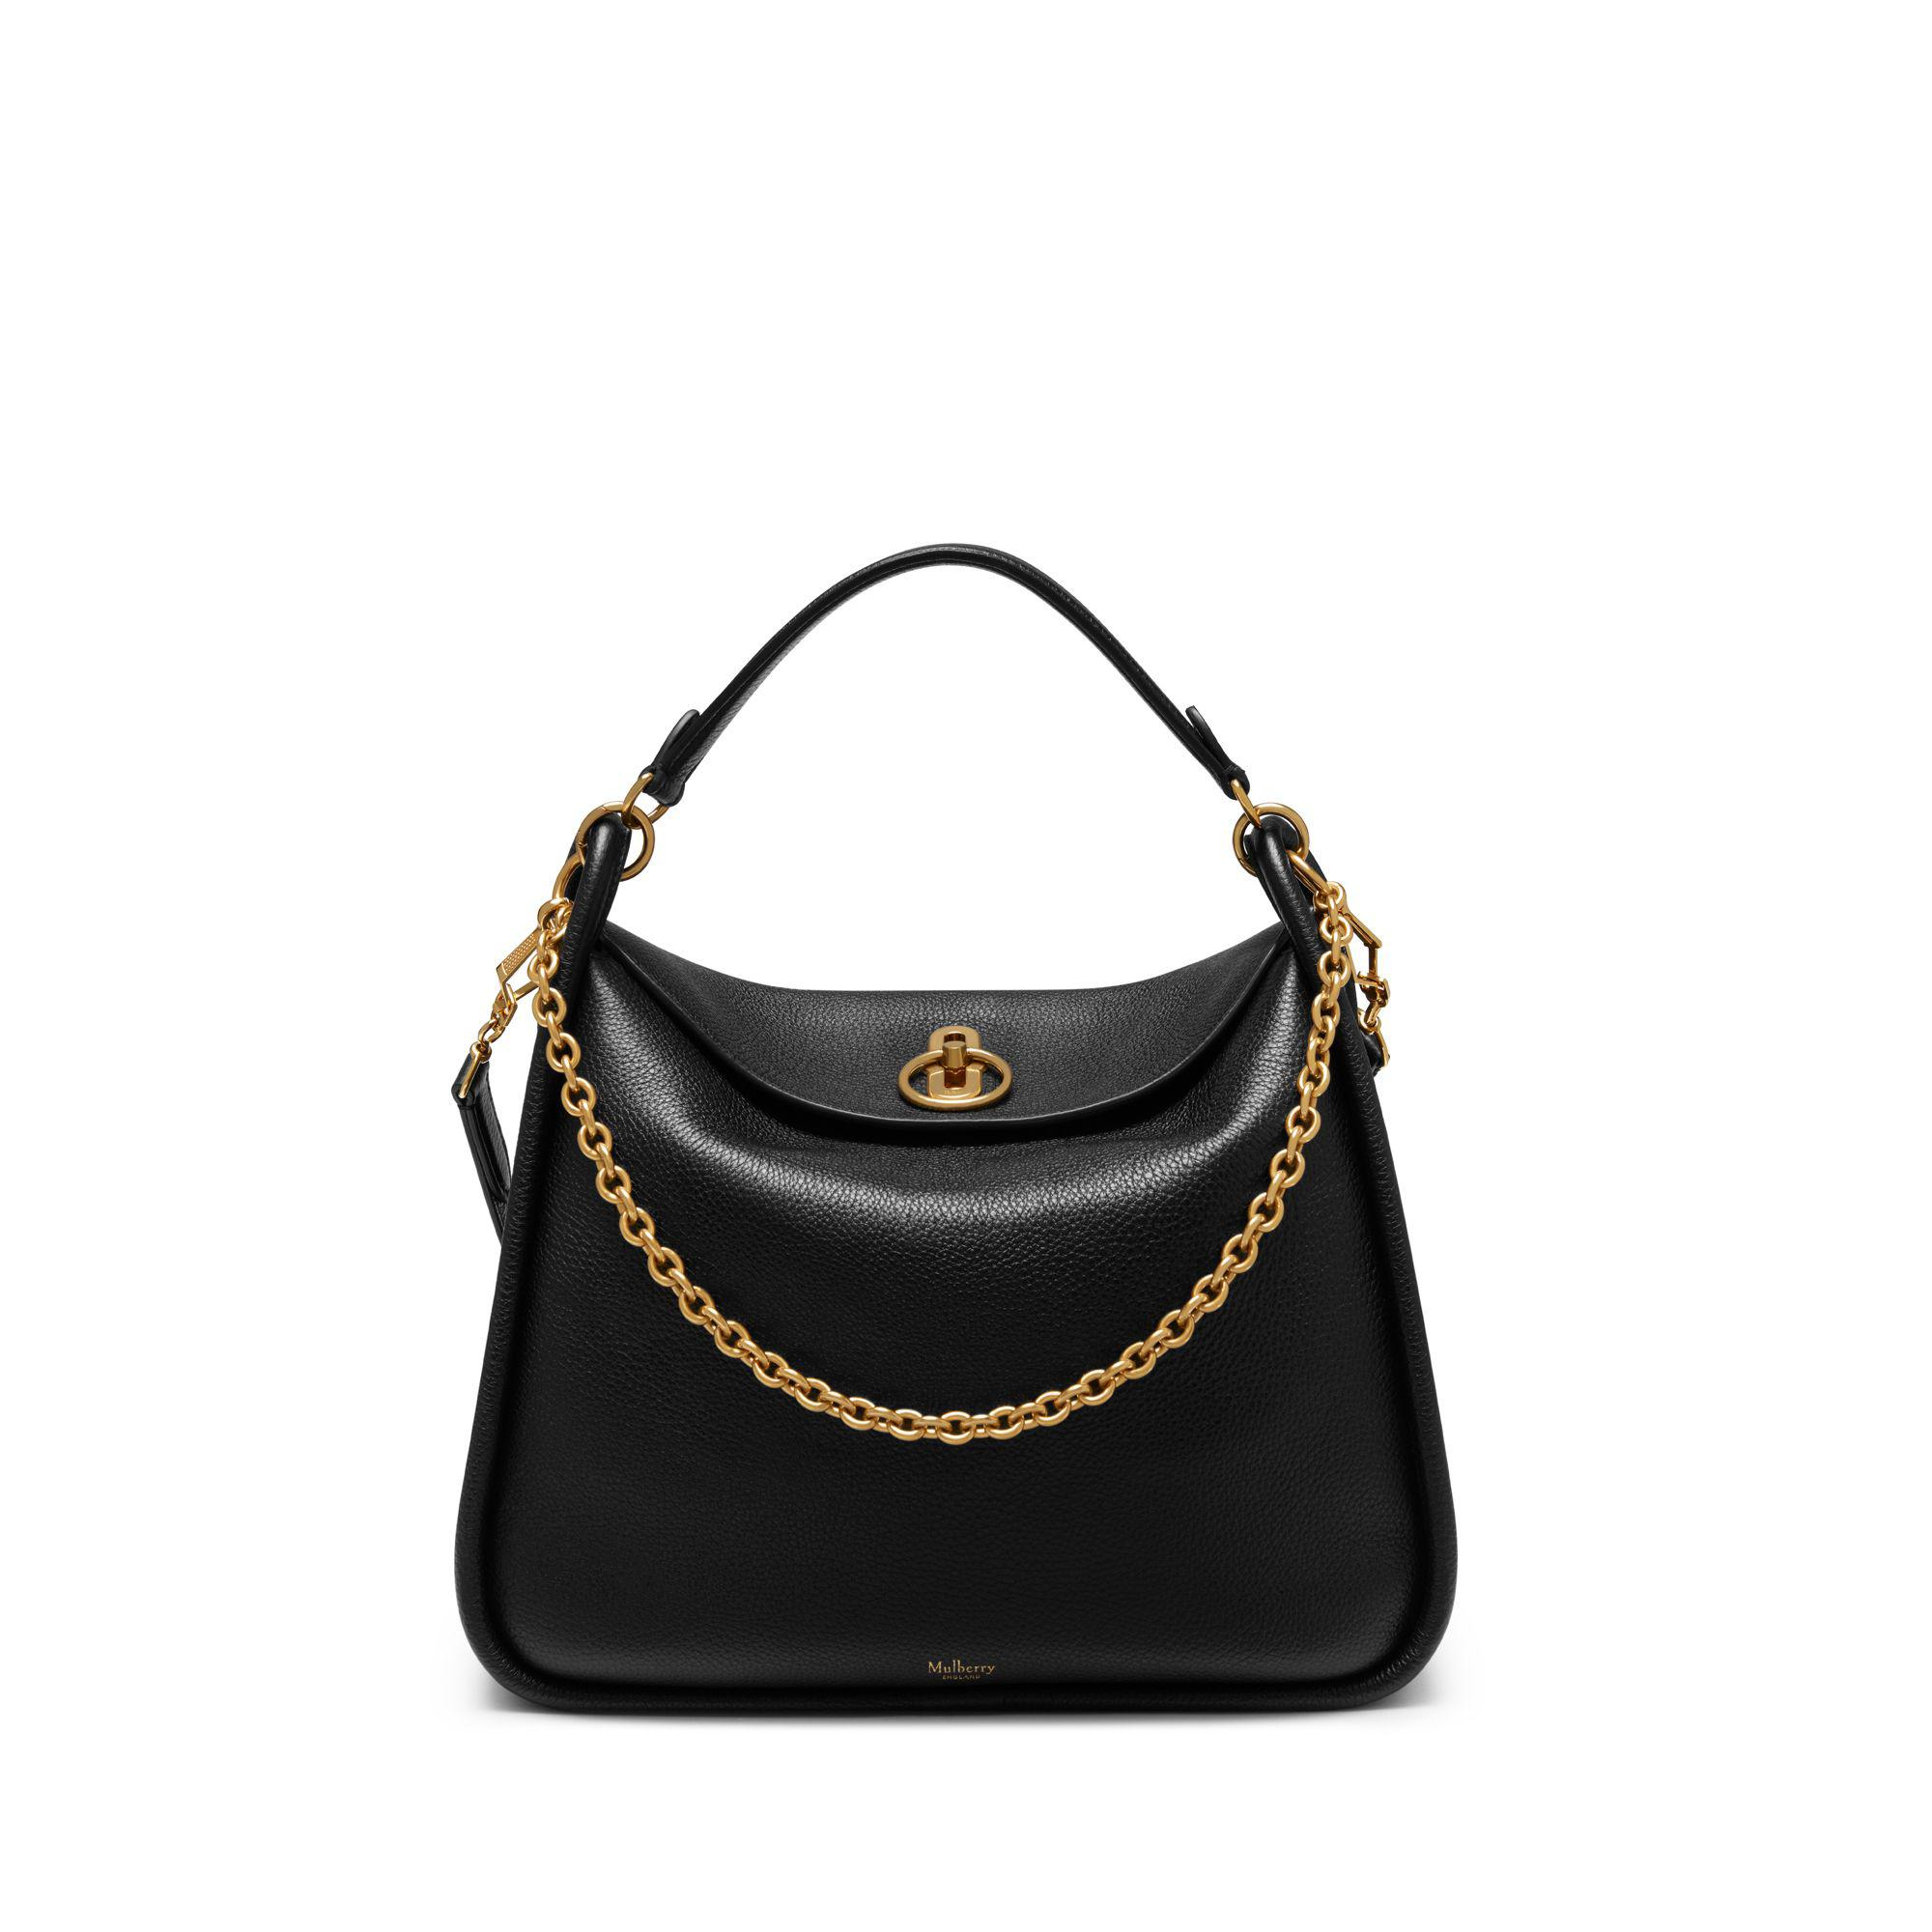 Mulberry - Leighton In Black Small Classic Grain - Lyst. View fullscreen 1f65ebb528db4